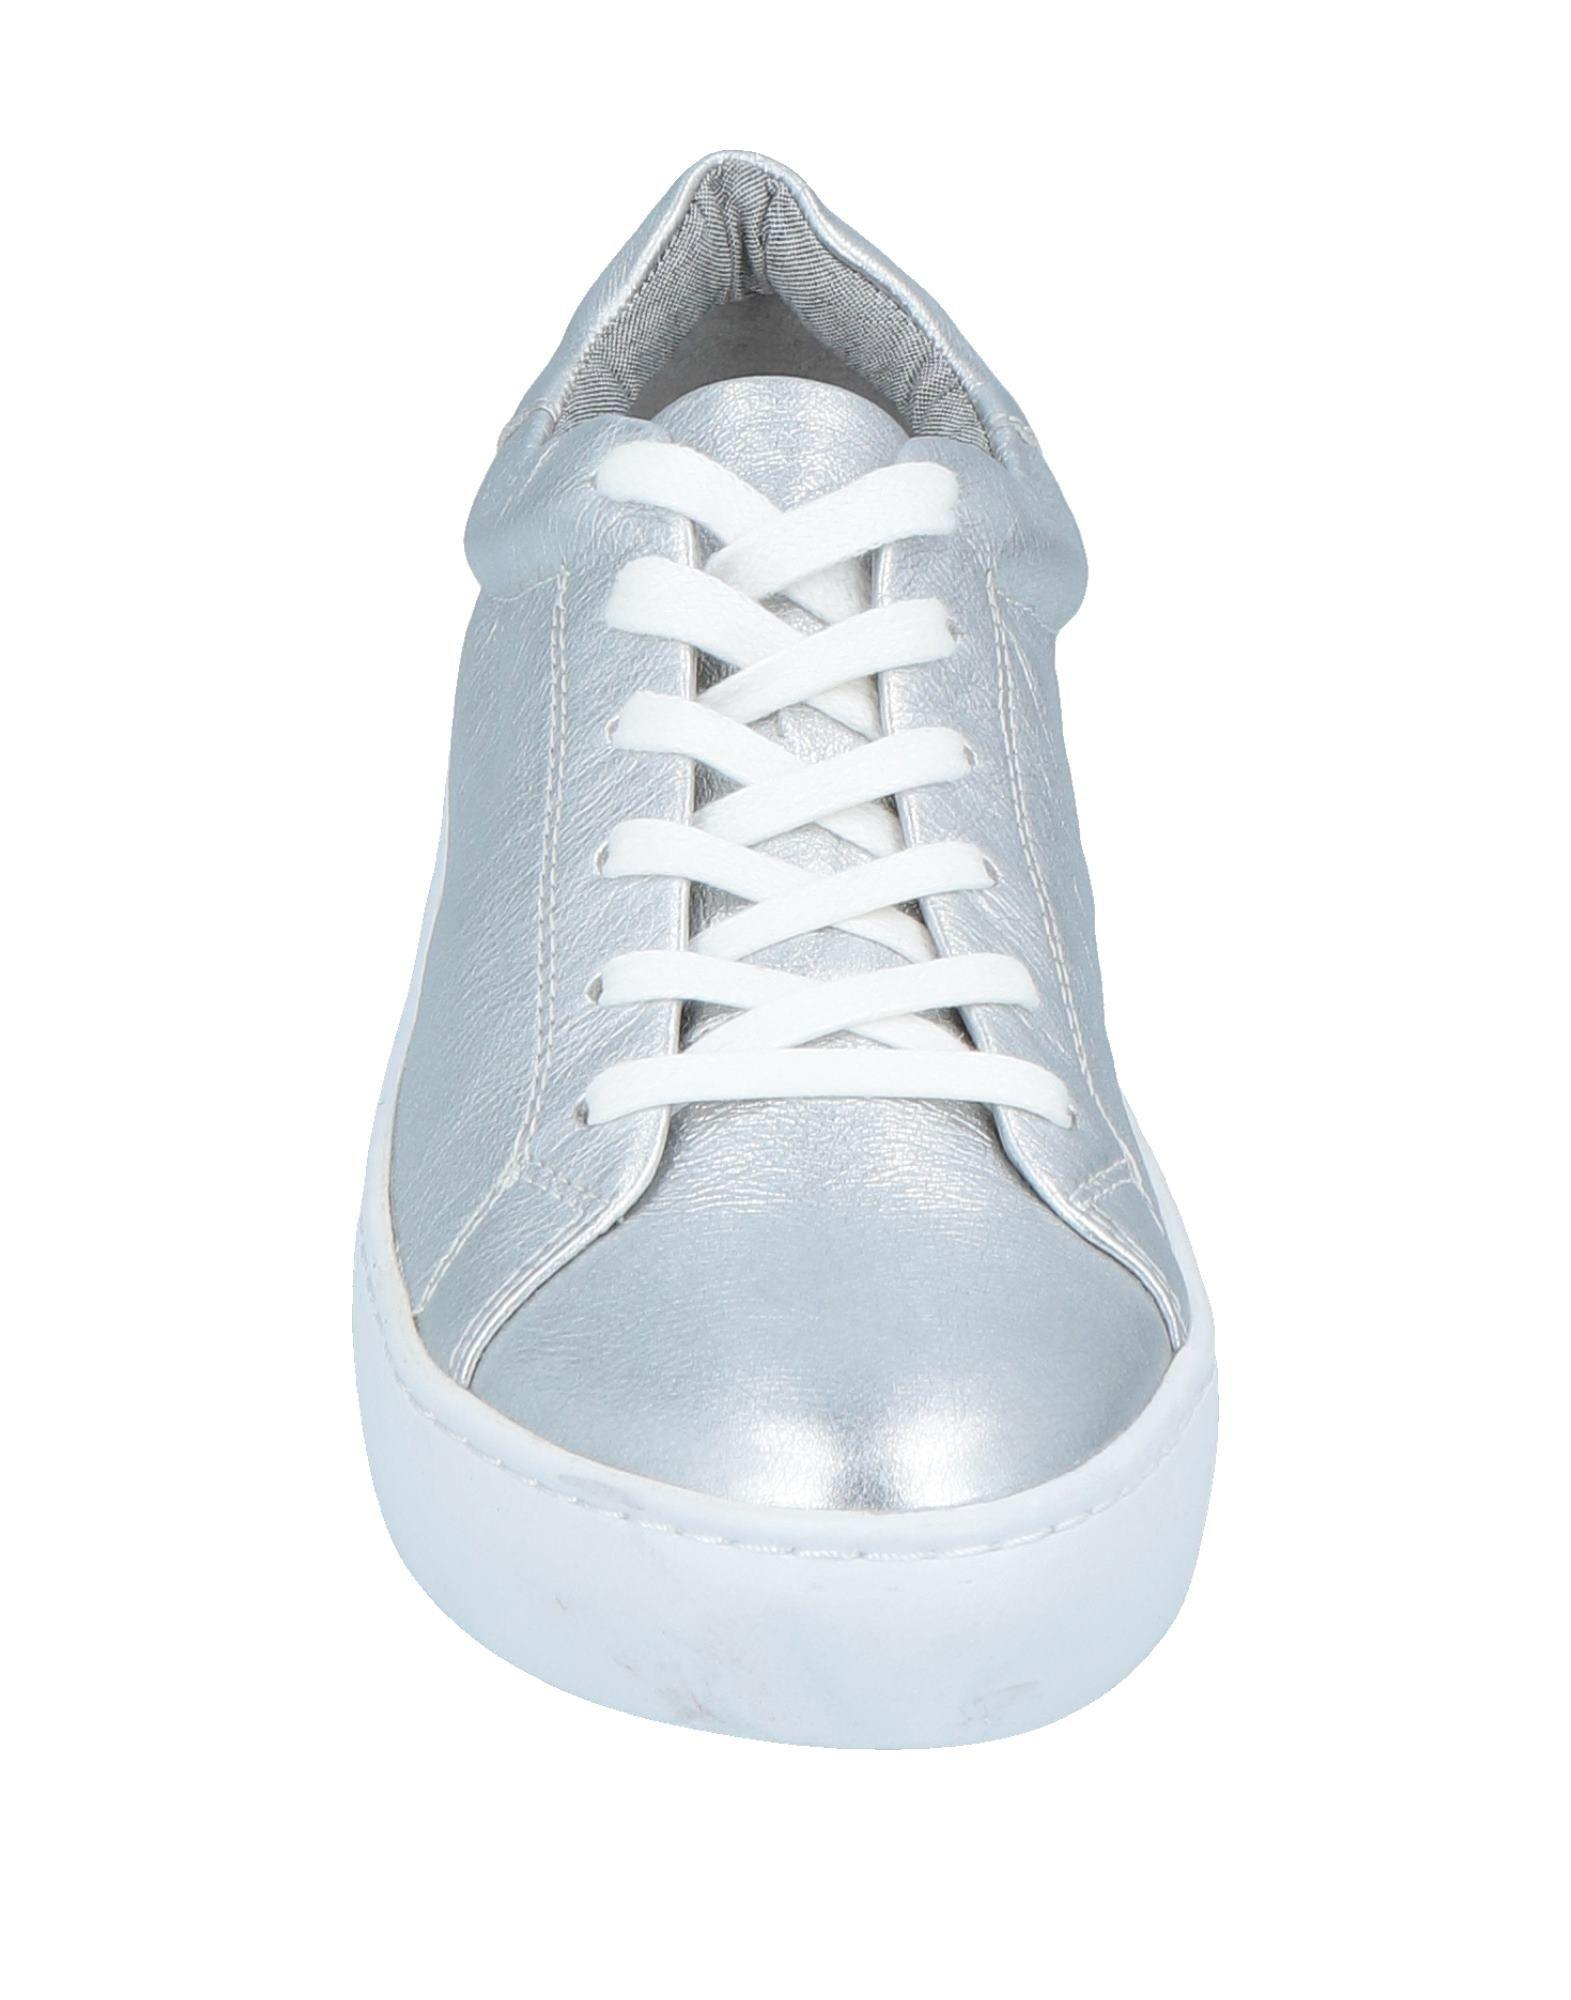 af562127789a Vagabond Low-tops   Sneakers in Metallic - Lyst